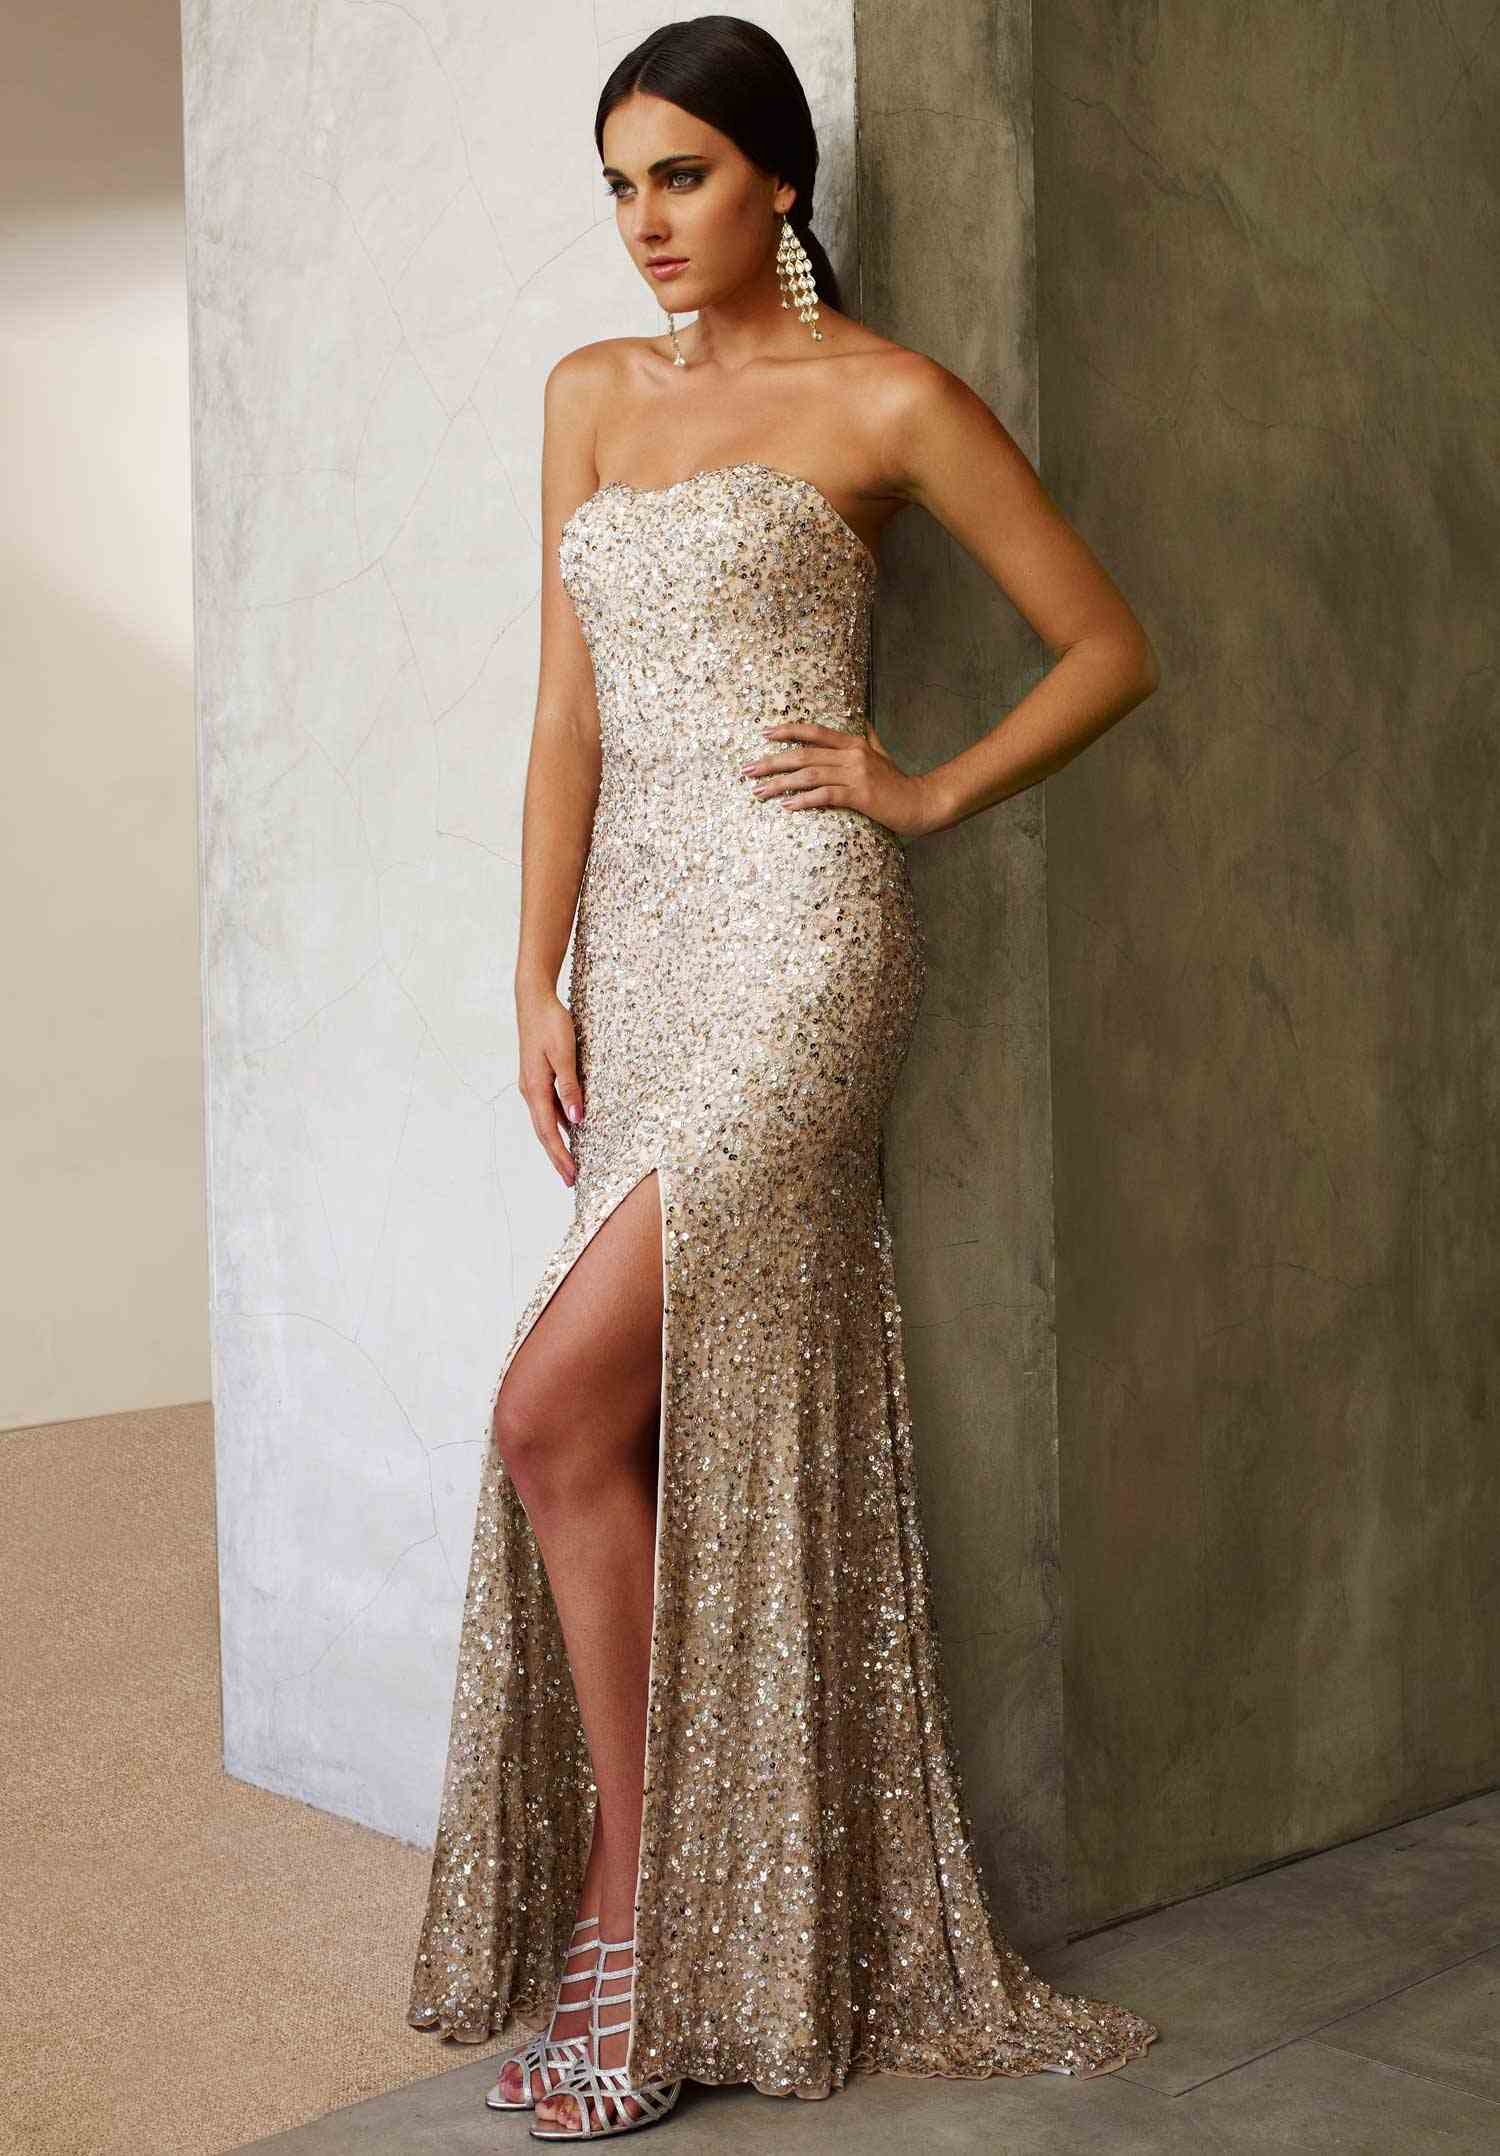 Sell used prom dresses kansas city cheap wedding dresses for Used wedding dresses kansas city